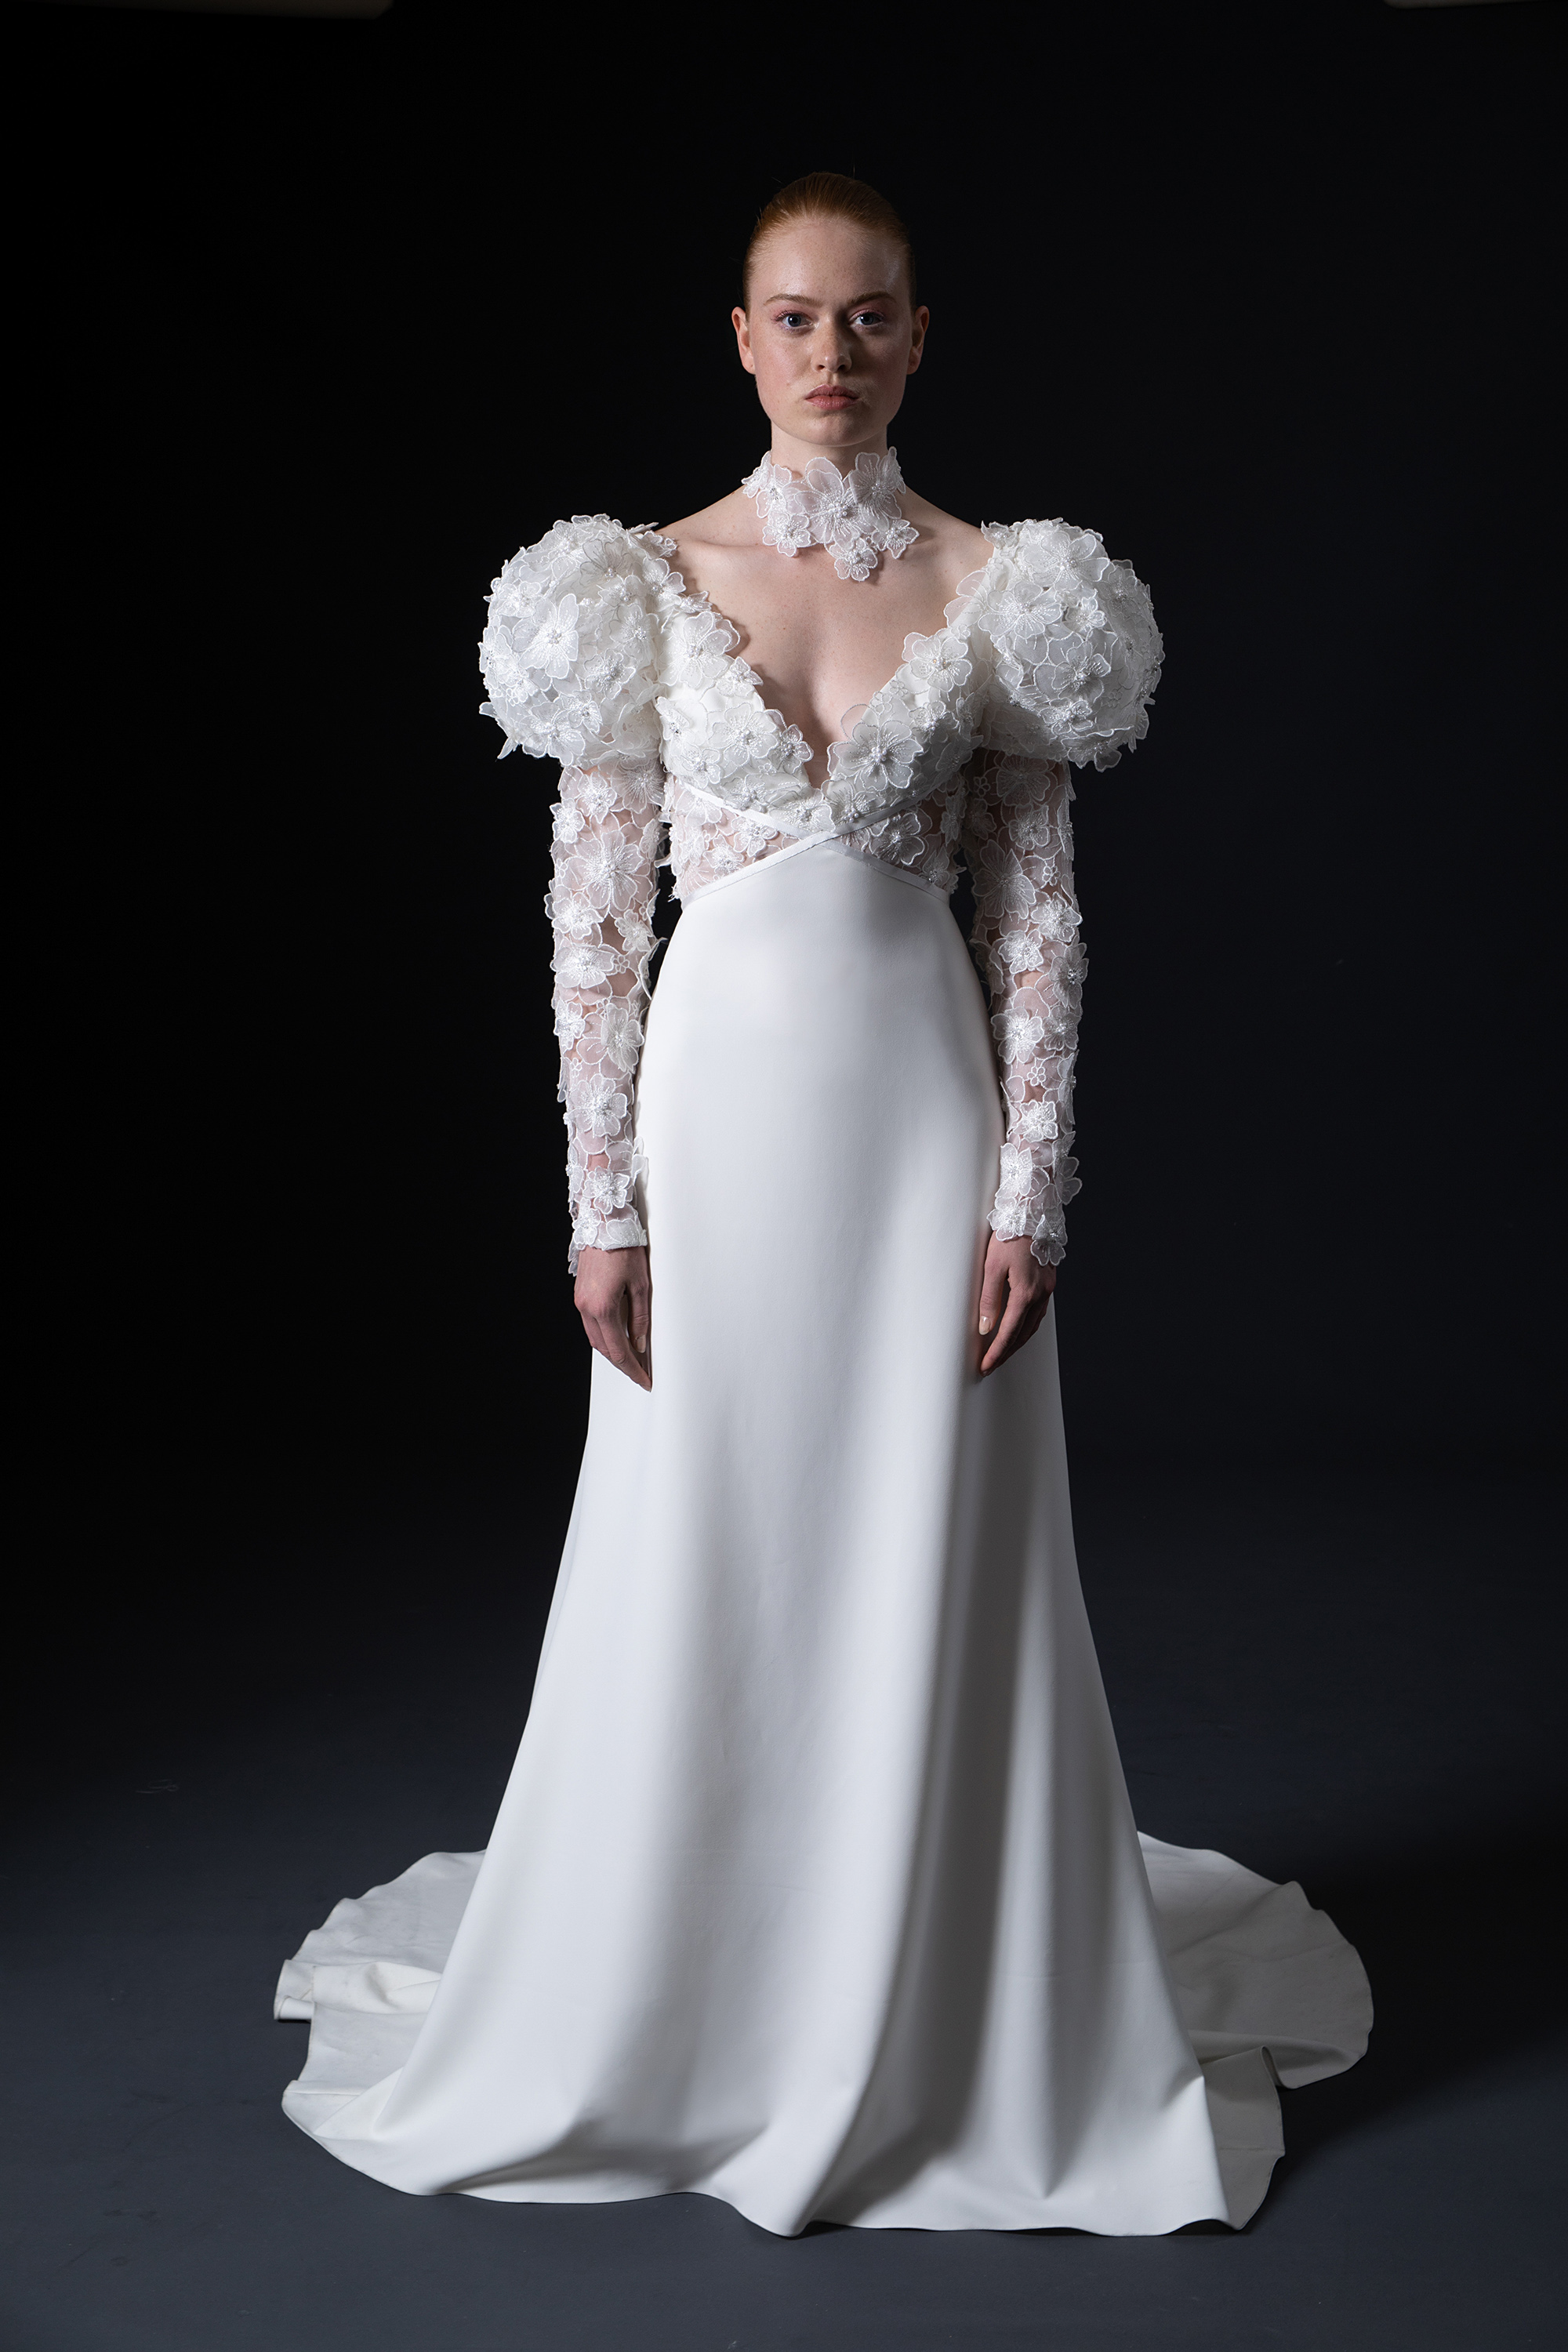 floral applique puffed long sleeves and bodice v-neck a-line wedding dress Isabelle Armstrong Spring 2020